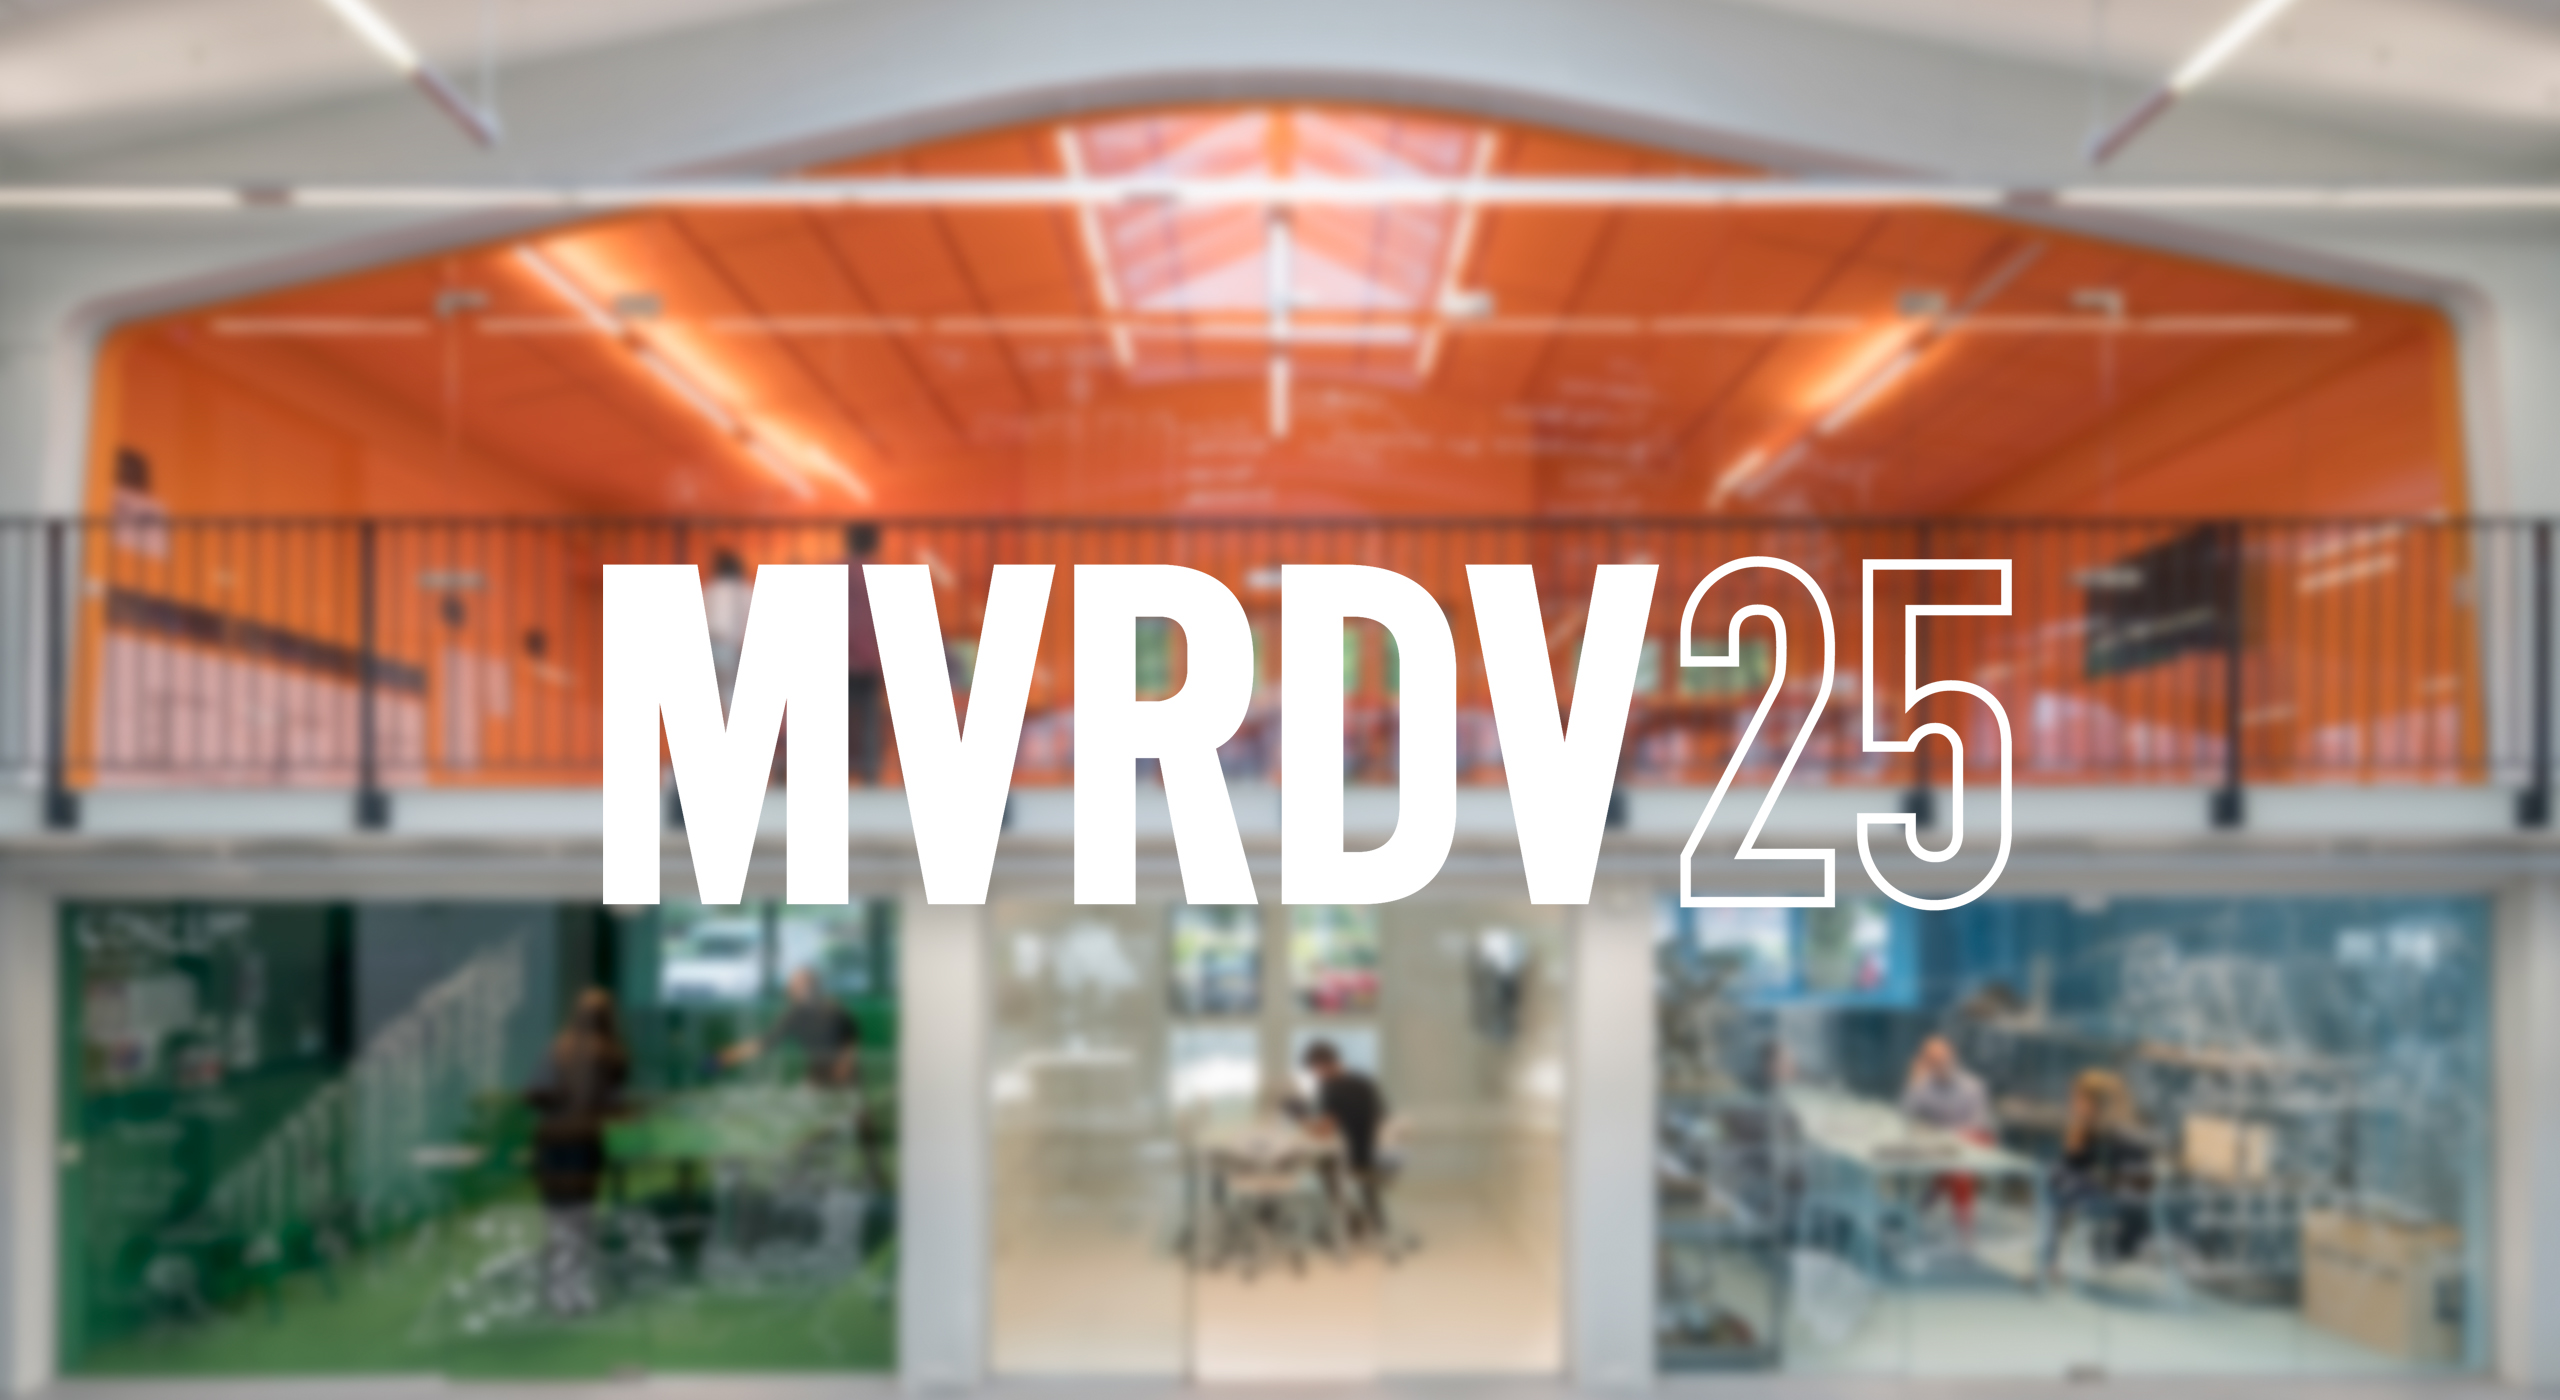 Charismatic, Idiosyncratic, Data-Driven, Green, Innovative: 25 Years of MVRDV!